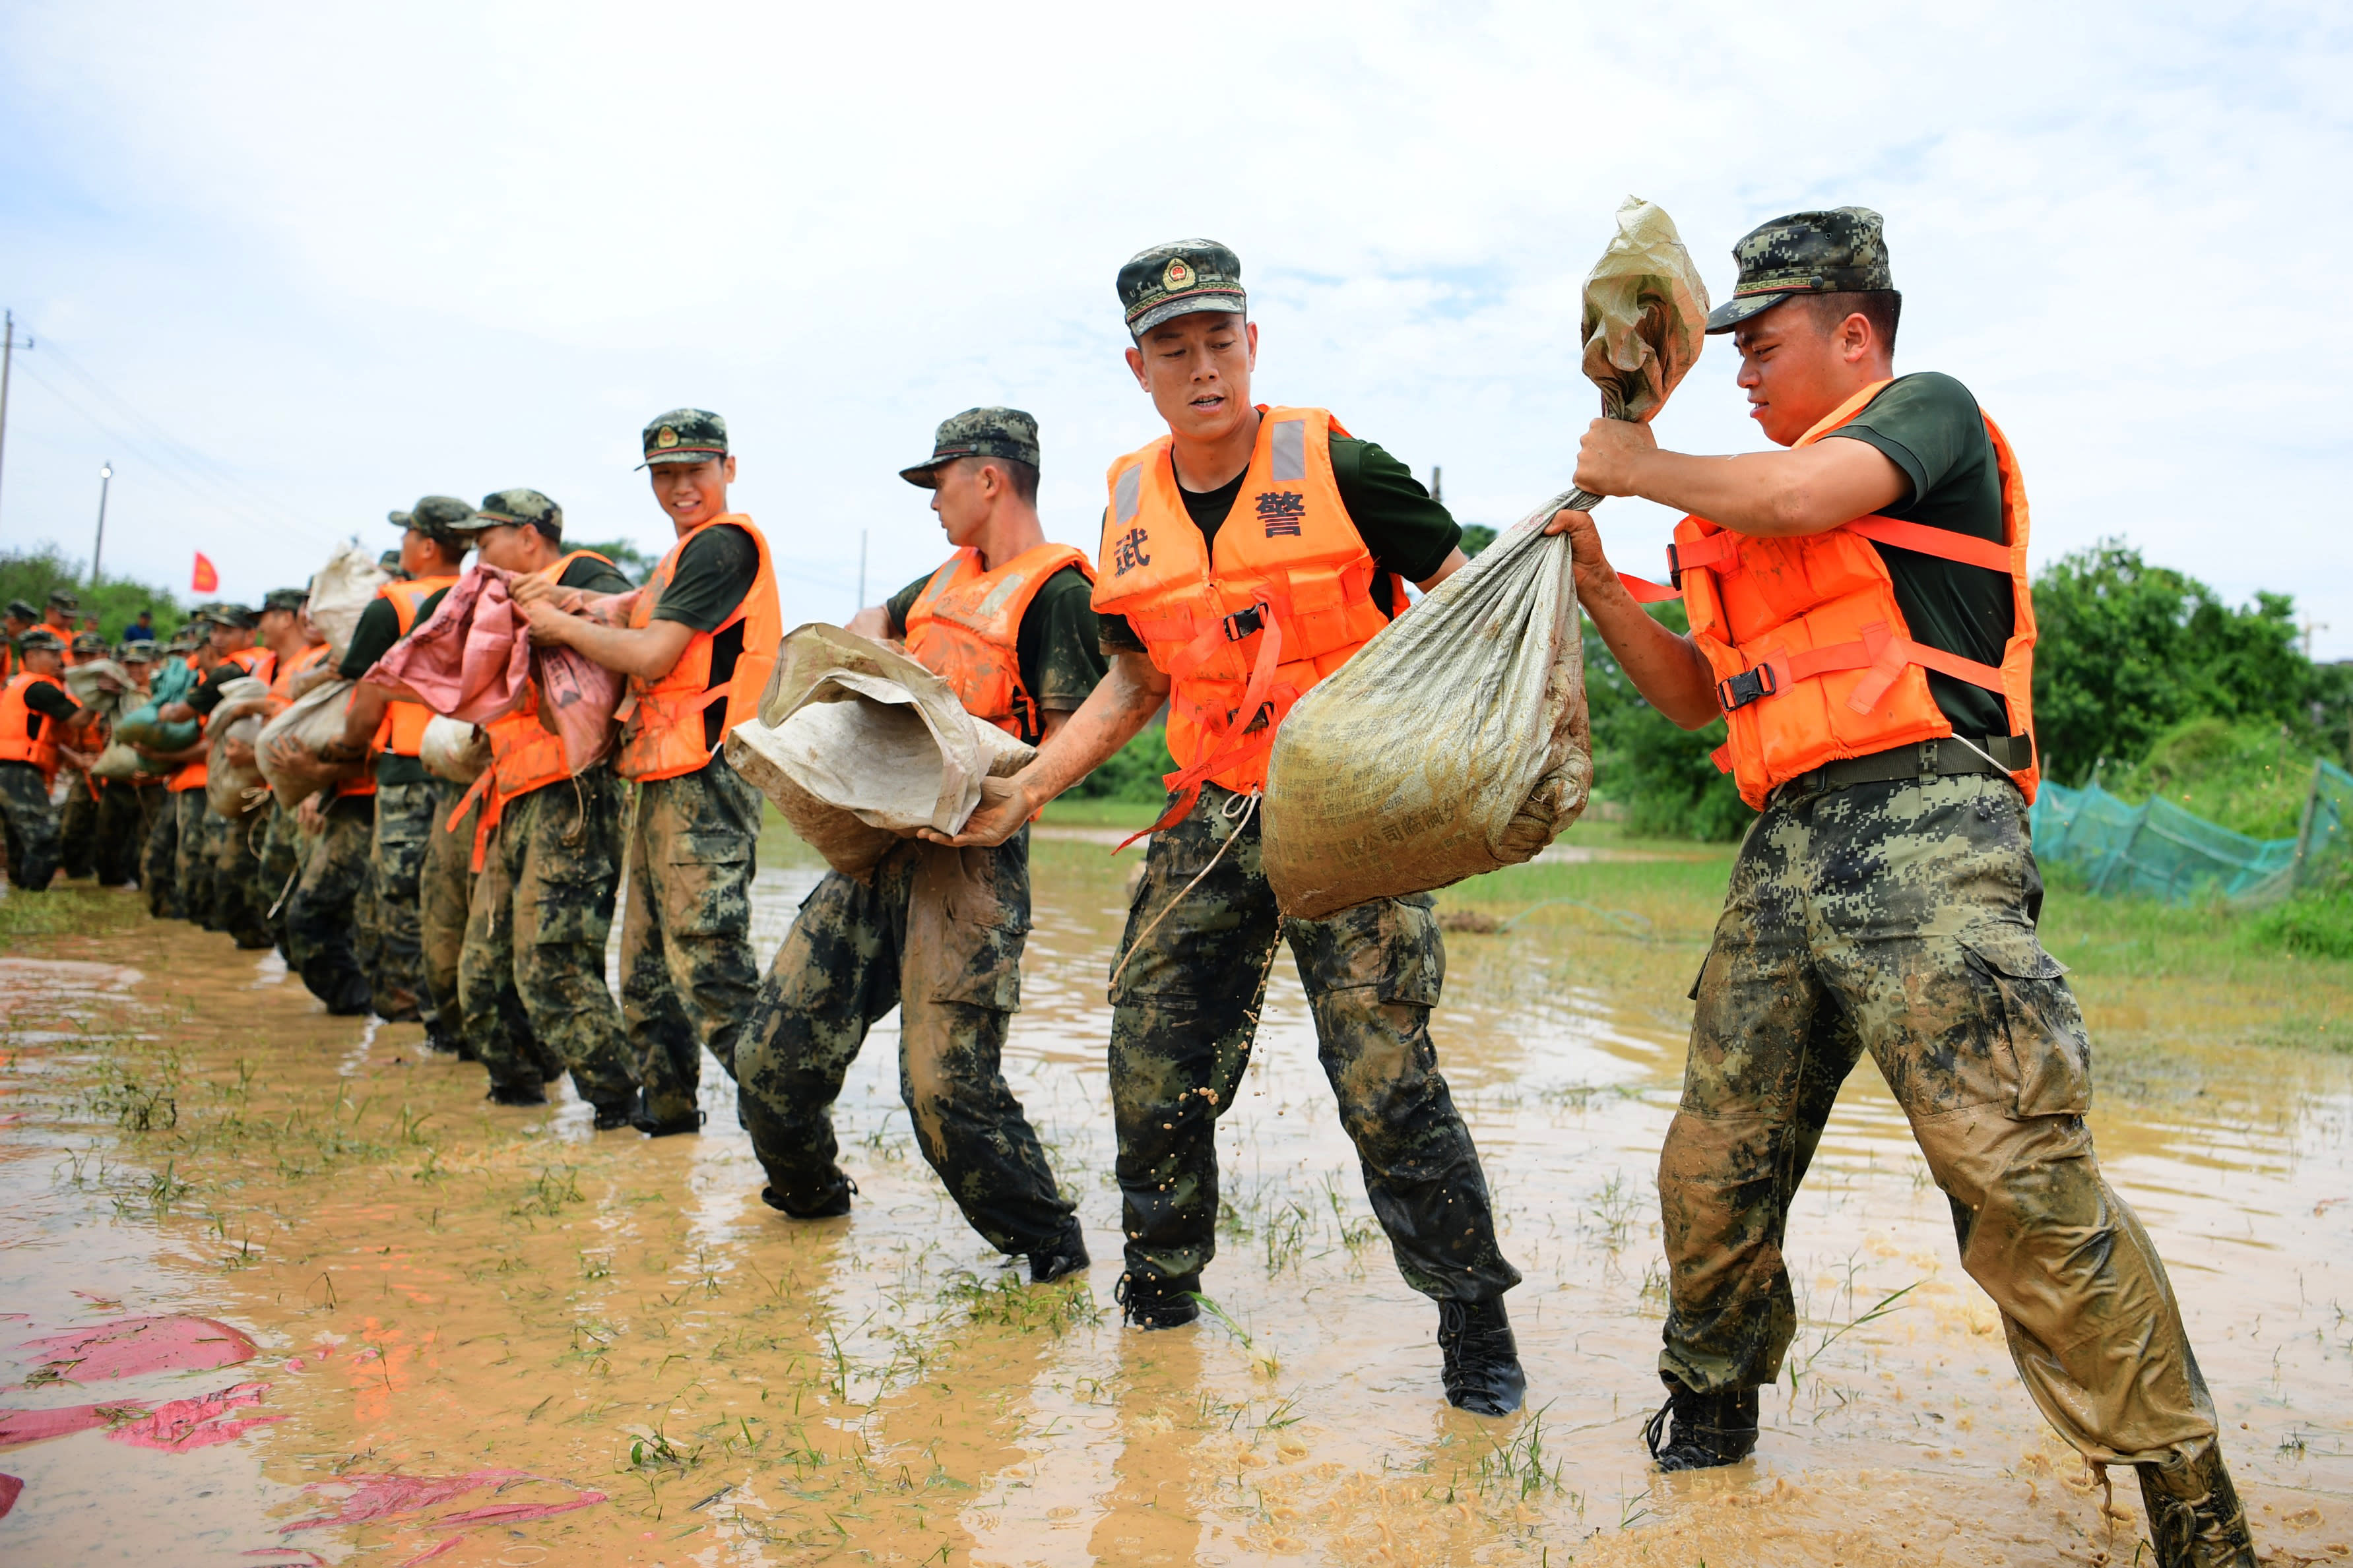 In this photo released by Xinhua News Agency, Chinese paramilitary policemen form a line to move sandbags to reinforce a dyke along the banks of Poyang Lake in Poyang County in eastern China's Jiangxi Province, Sunday, July 12, 2020. Vice Minister of Emergency Management Zheng Guoguang told reporters Monday, July 13, 2020 that the Yangtze River and parts of its watershed have seen the second highest rainfall since 1961 over the past six months. (Cao Xianxun/Xinhua via AP)